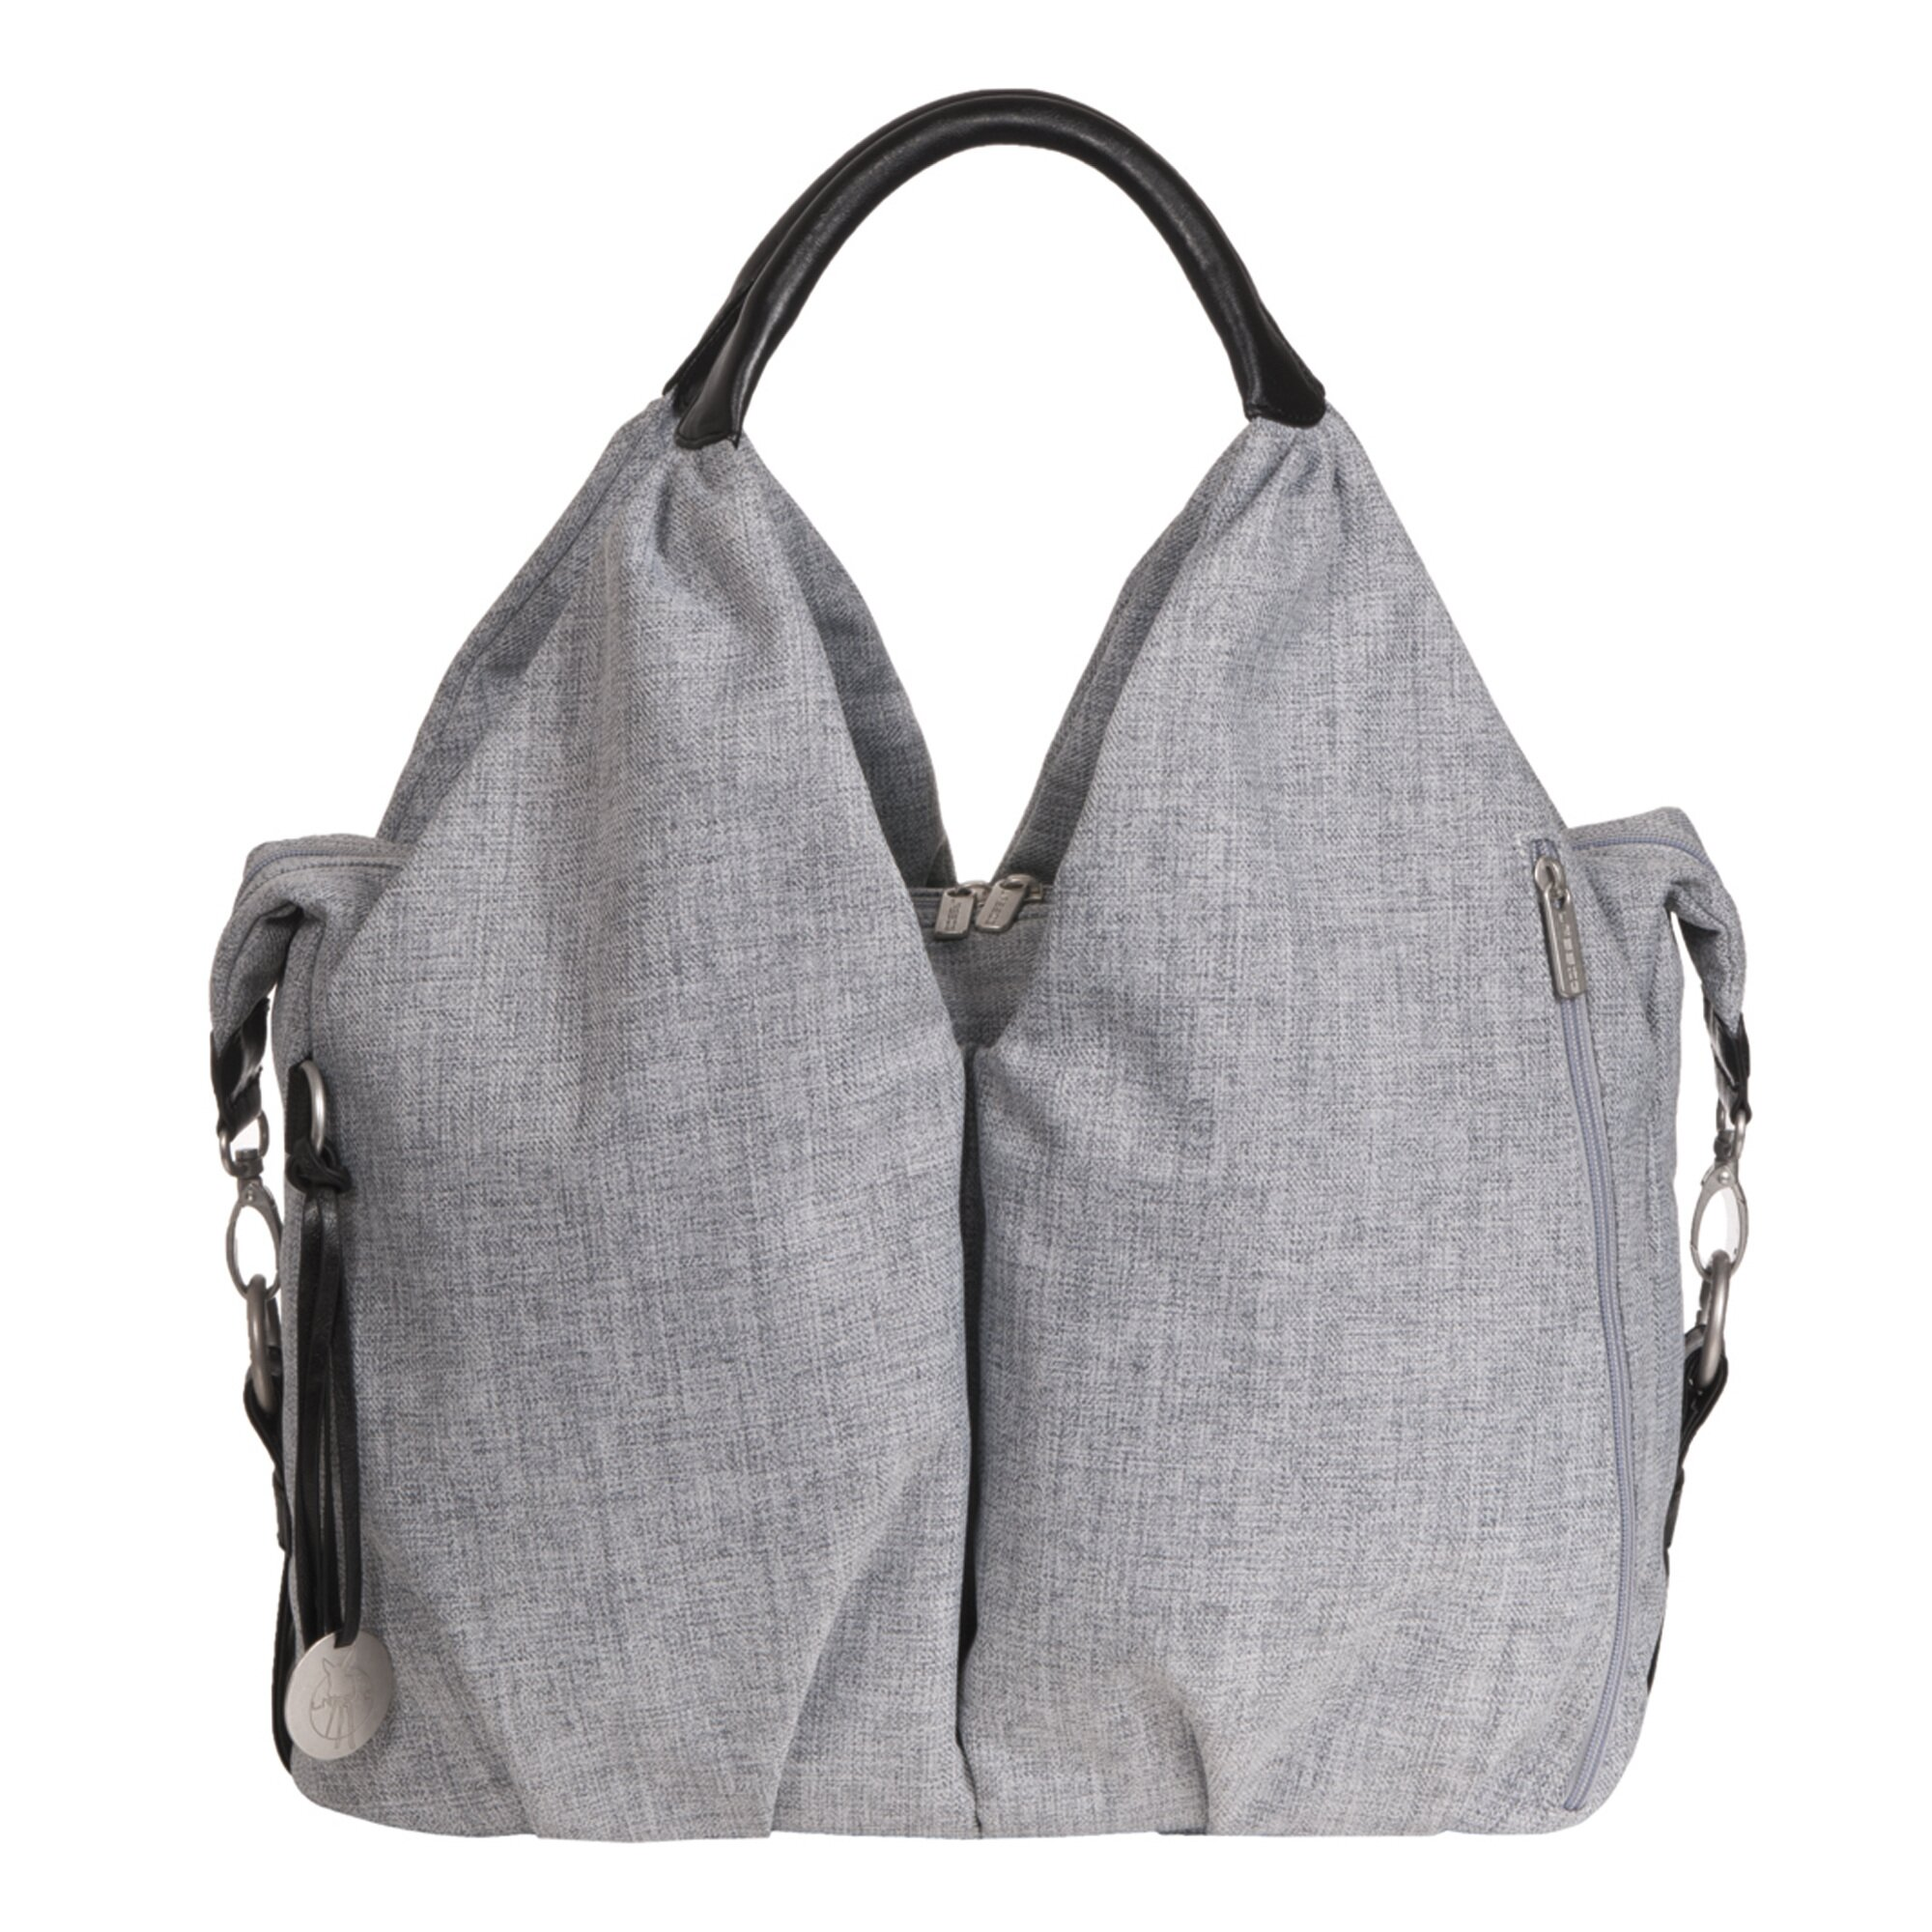 Green Label Wickeltasche Neckline Bag grau